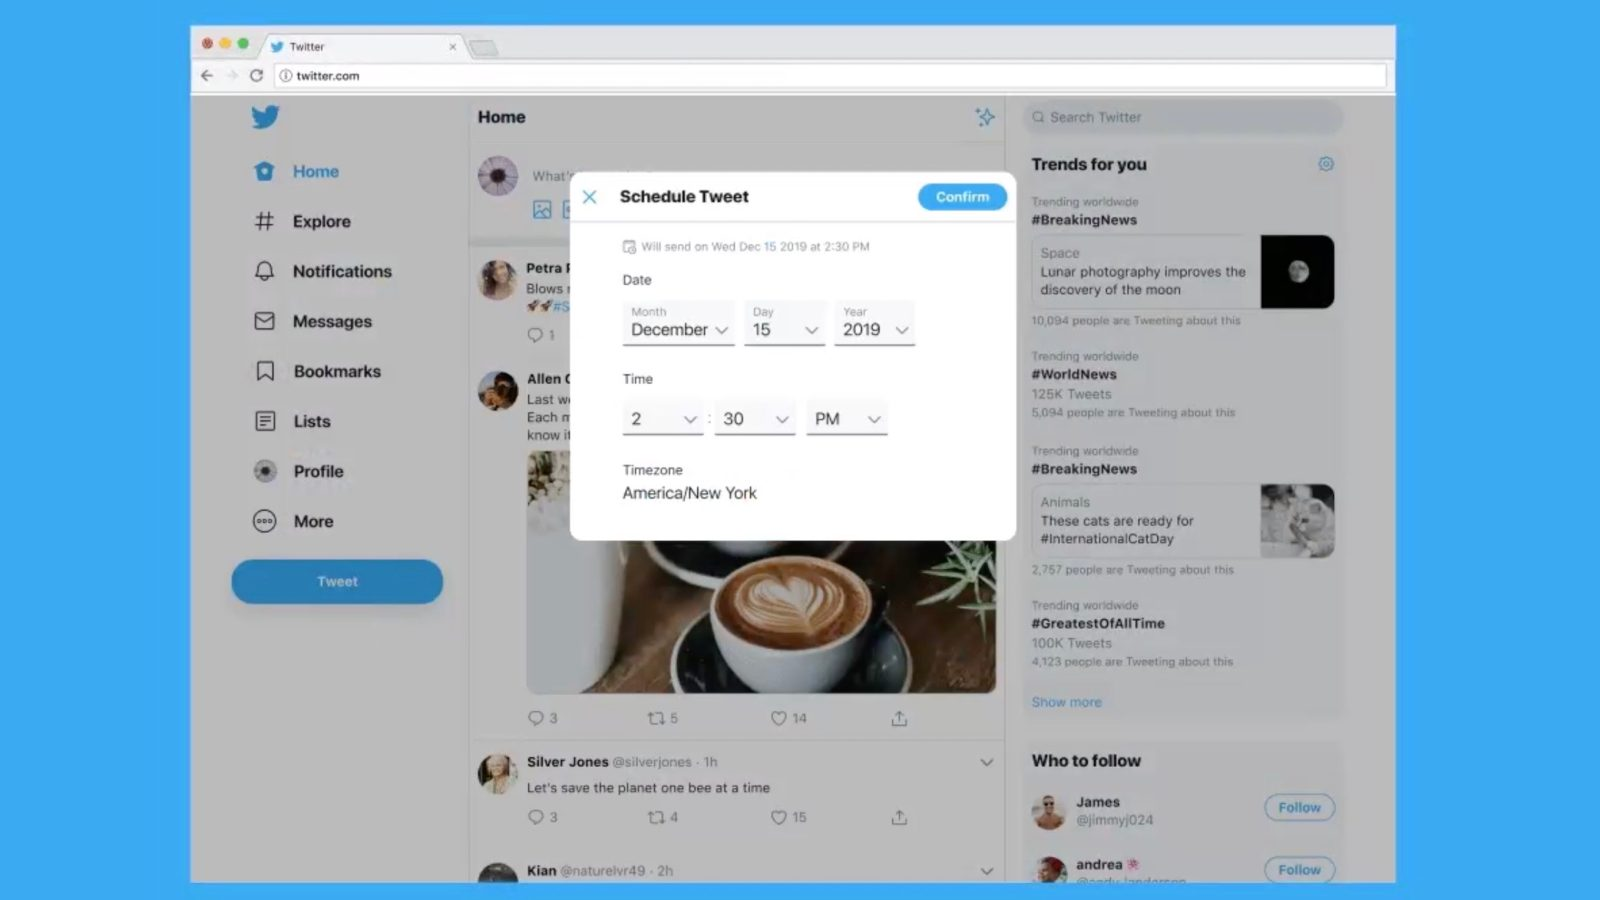 Twitter rolling out support for scheduling tweets via web app